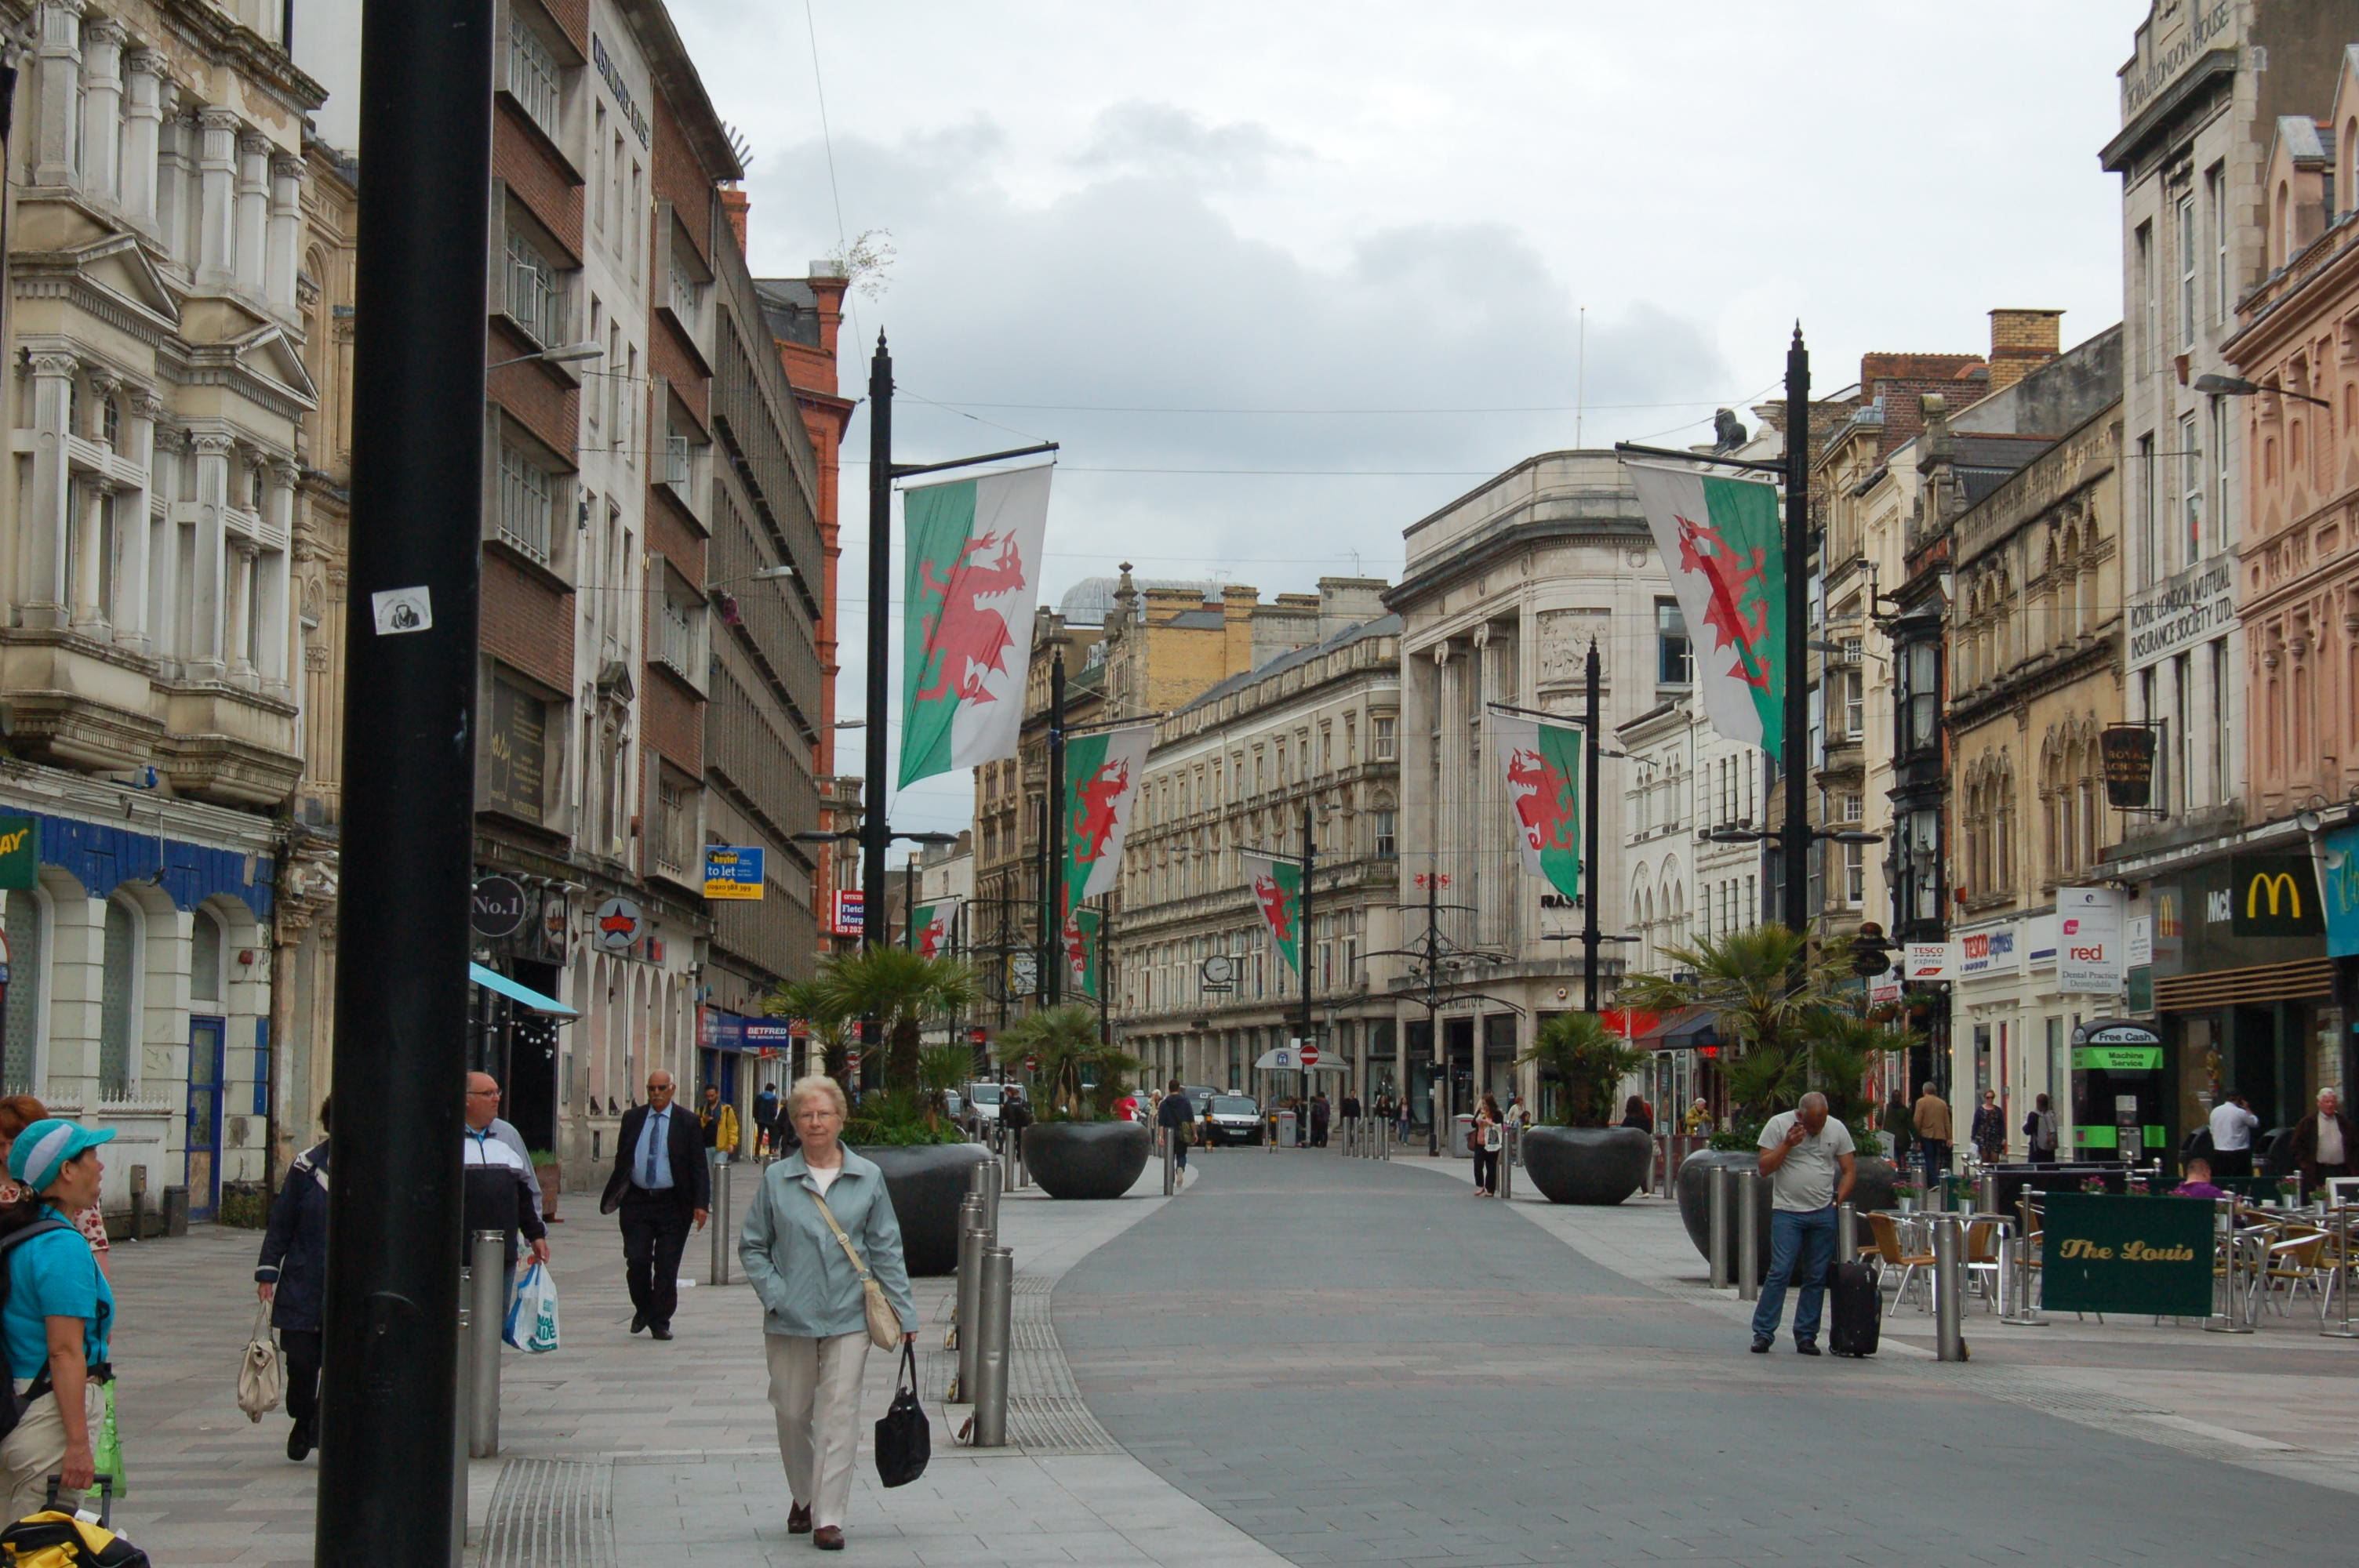 Main Street of Cardiff, Wales